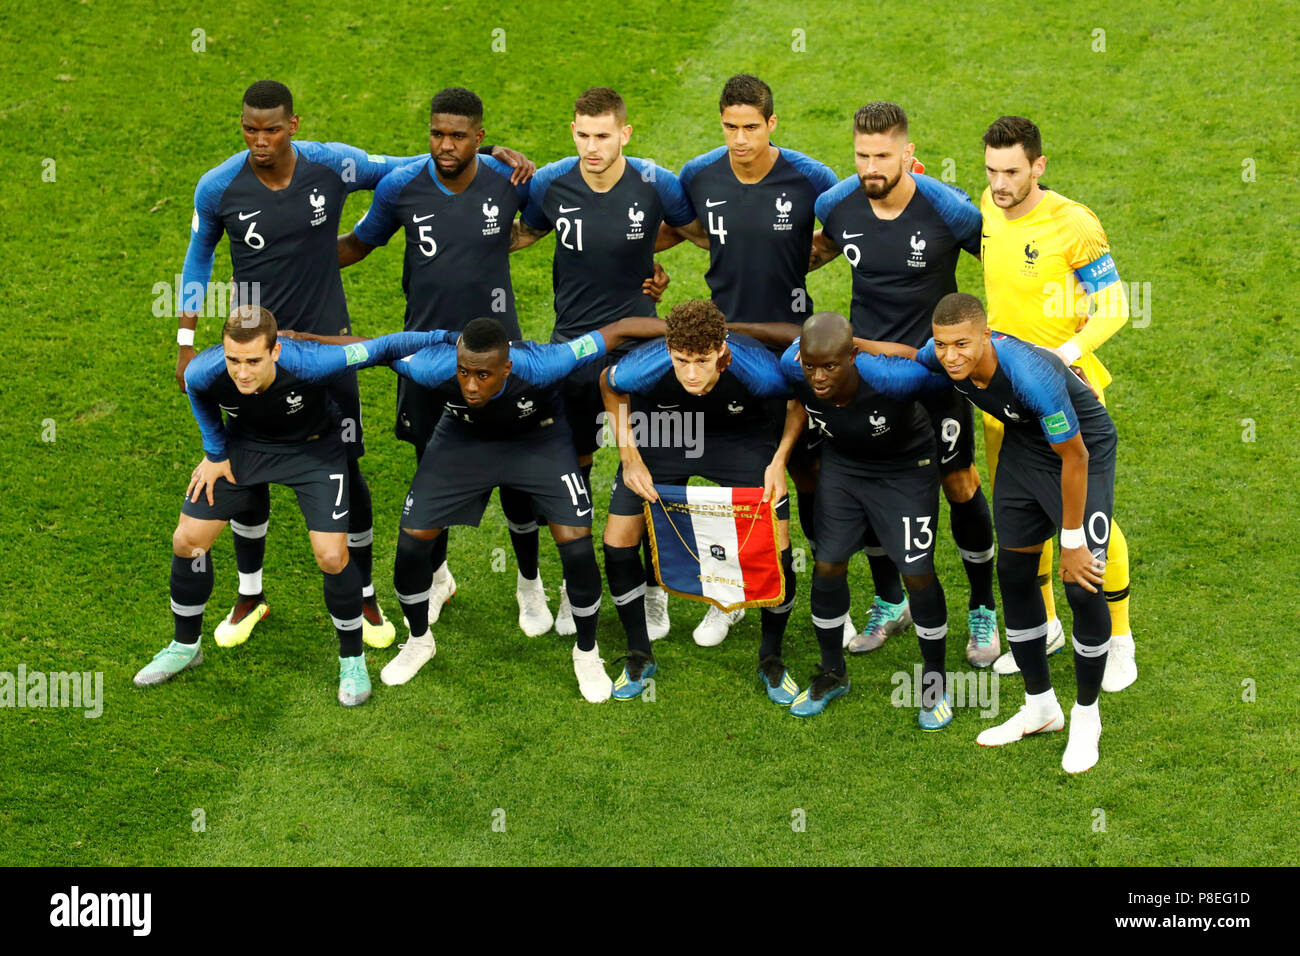 Can you hear the drumlines rattling? Saint Petersburg Russia July 10 France National Team Players Pose For A Photo During The 2018 Fifa World Cup Russia Semi Final Match Between France And Belgium At Saint Petersburg Stadium